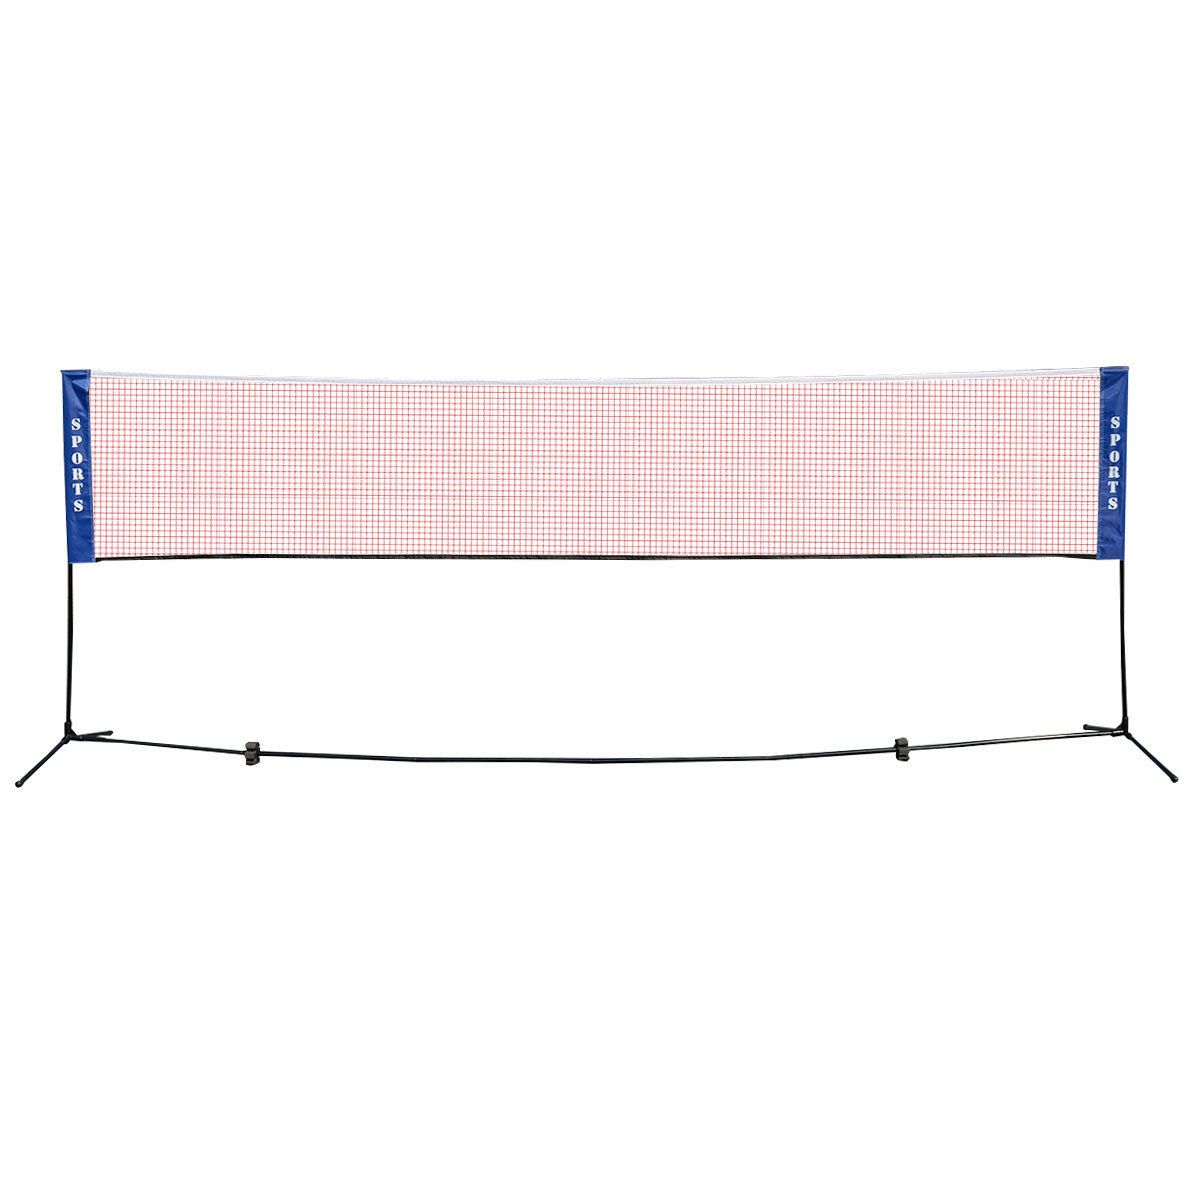 Volleyball Badminton Set Just 35 Down From 72 Plus Free Shipping Http Feeds Feedblitz Com 537121208 0 Grocerysho Badminton Set Badminton Volleyball